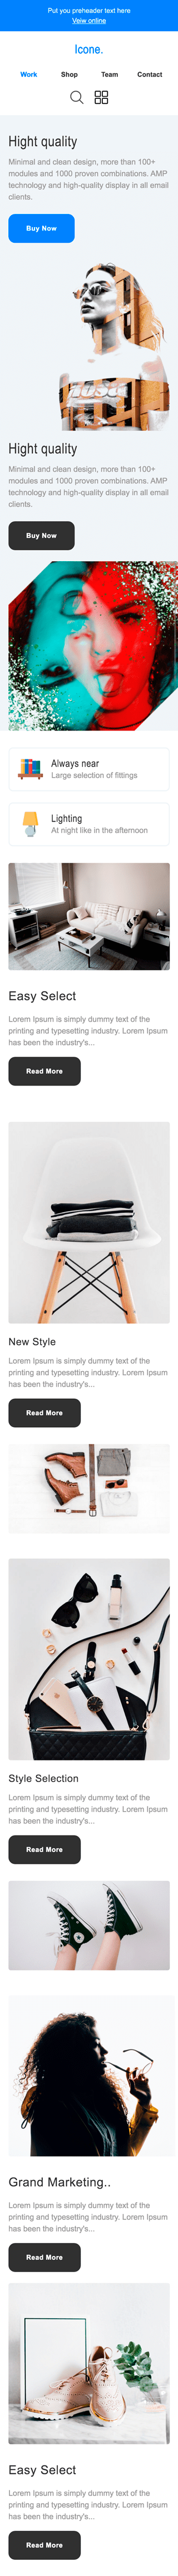 Promo Email Template «Style icon» for Furniture, Interior & DIY industry mobile view